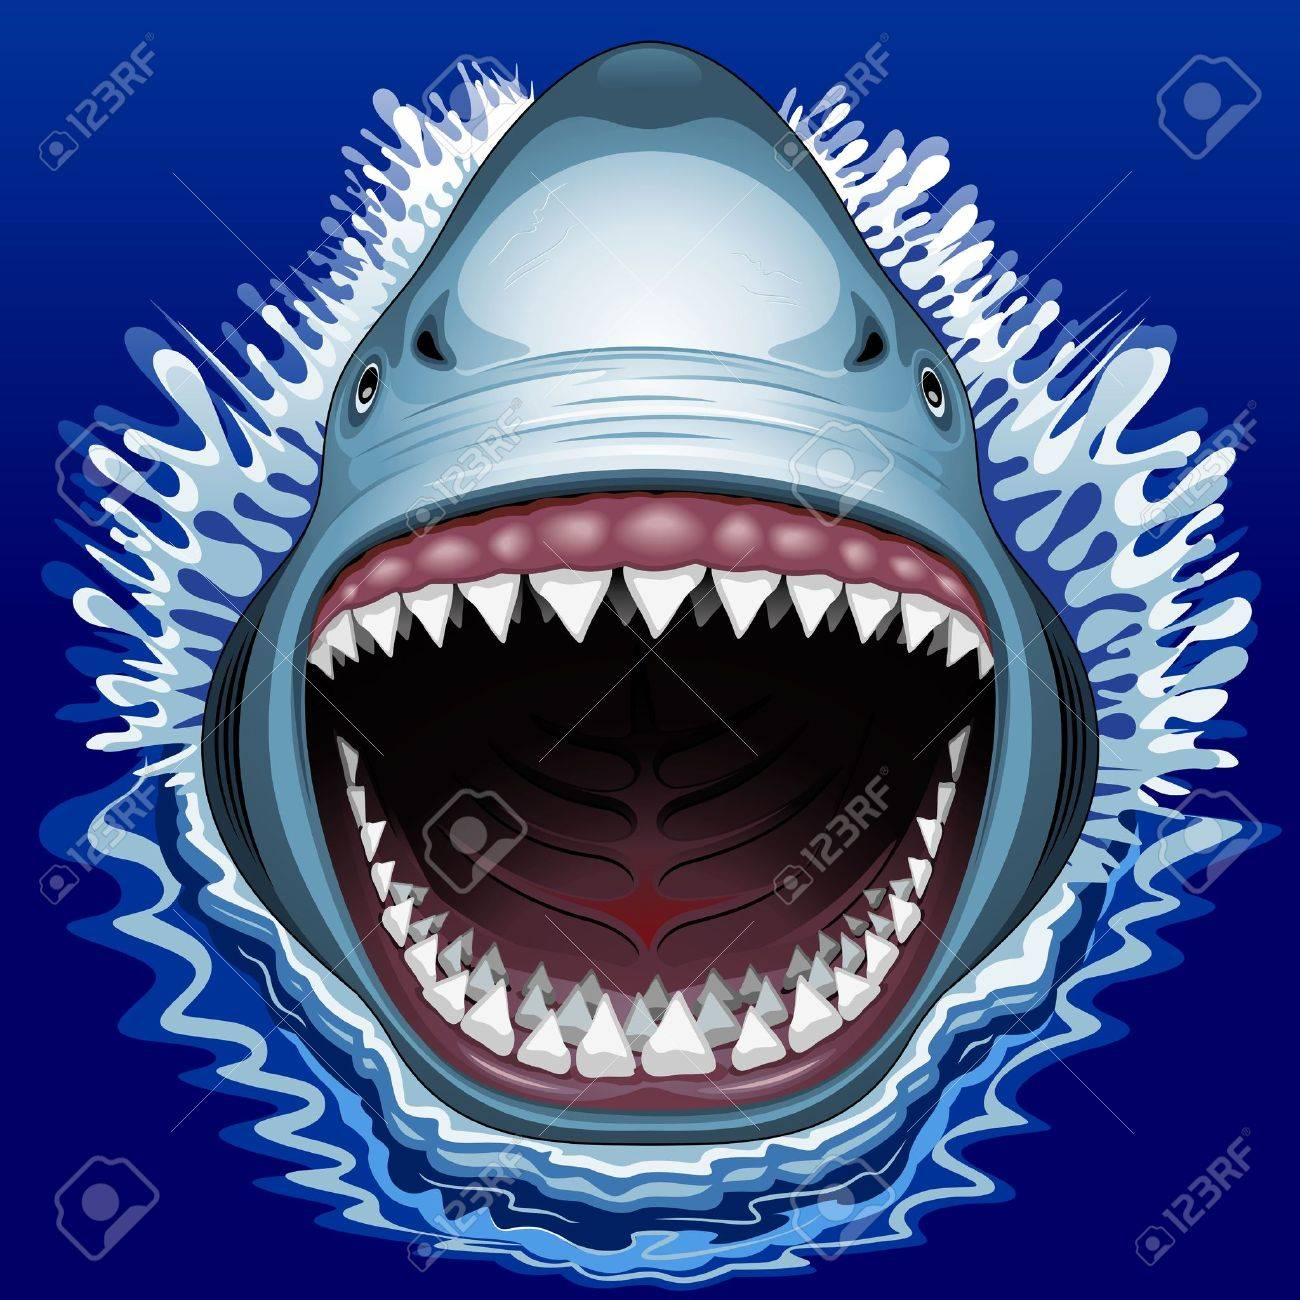 Mouth clipart jaw. Shark drawing at getdrawings